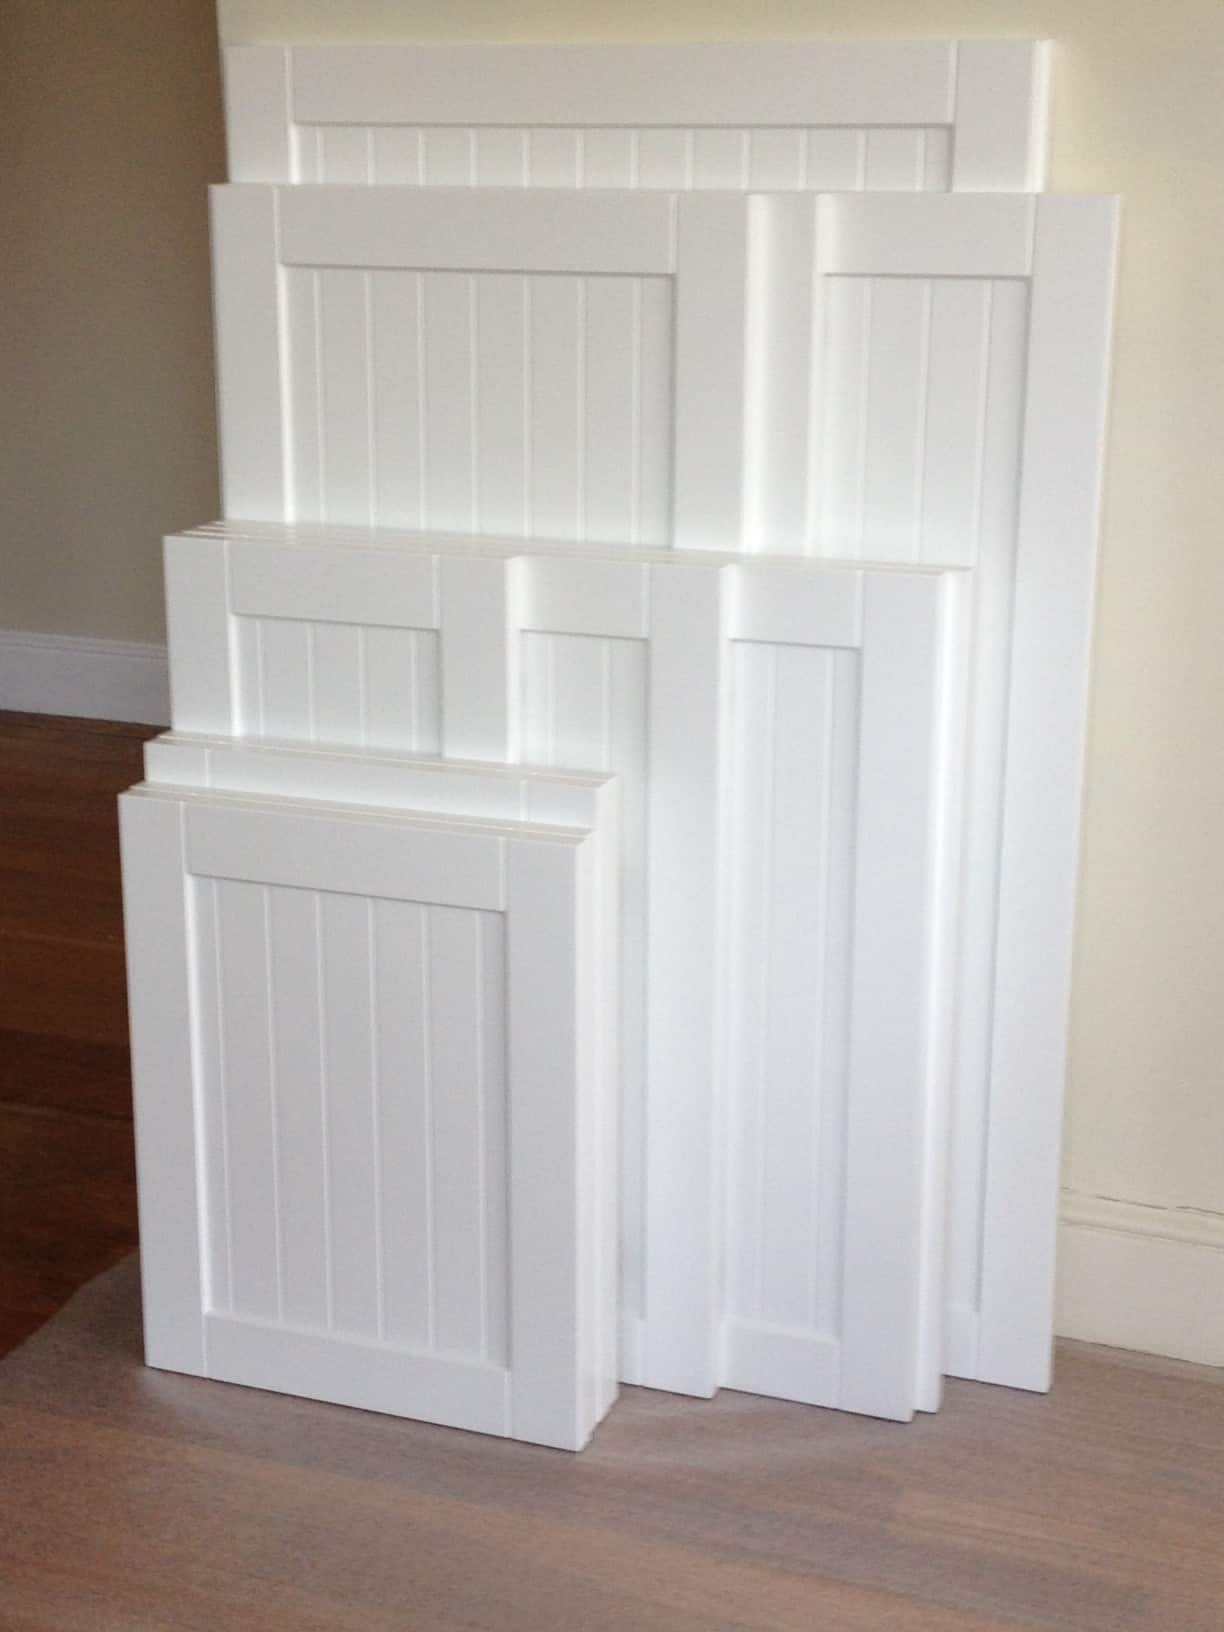 Shaker style cabinet with beadboard accent